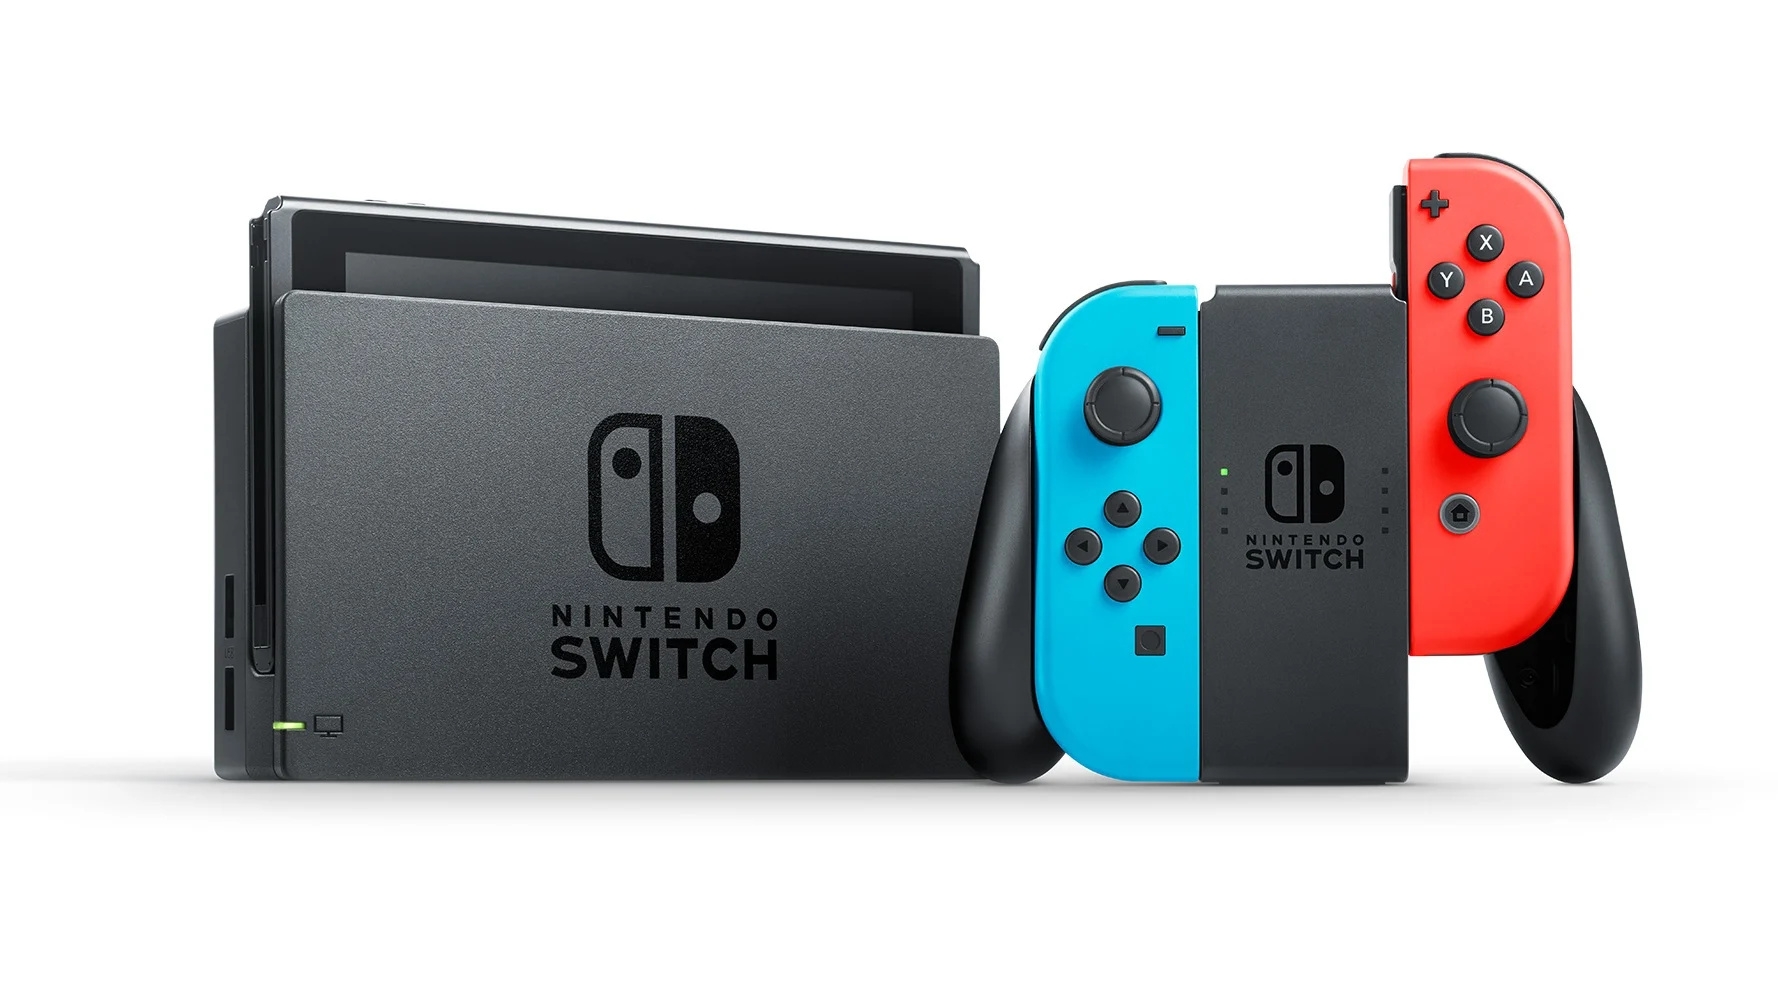 Can't find a Nintendo Switch? More consoles are on the way